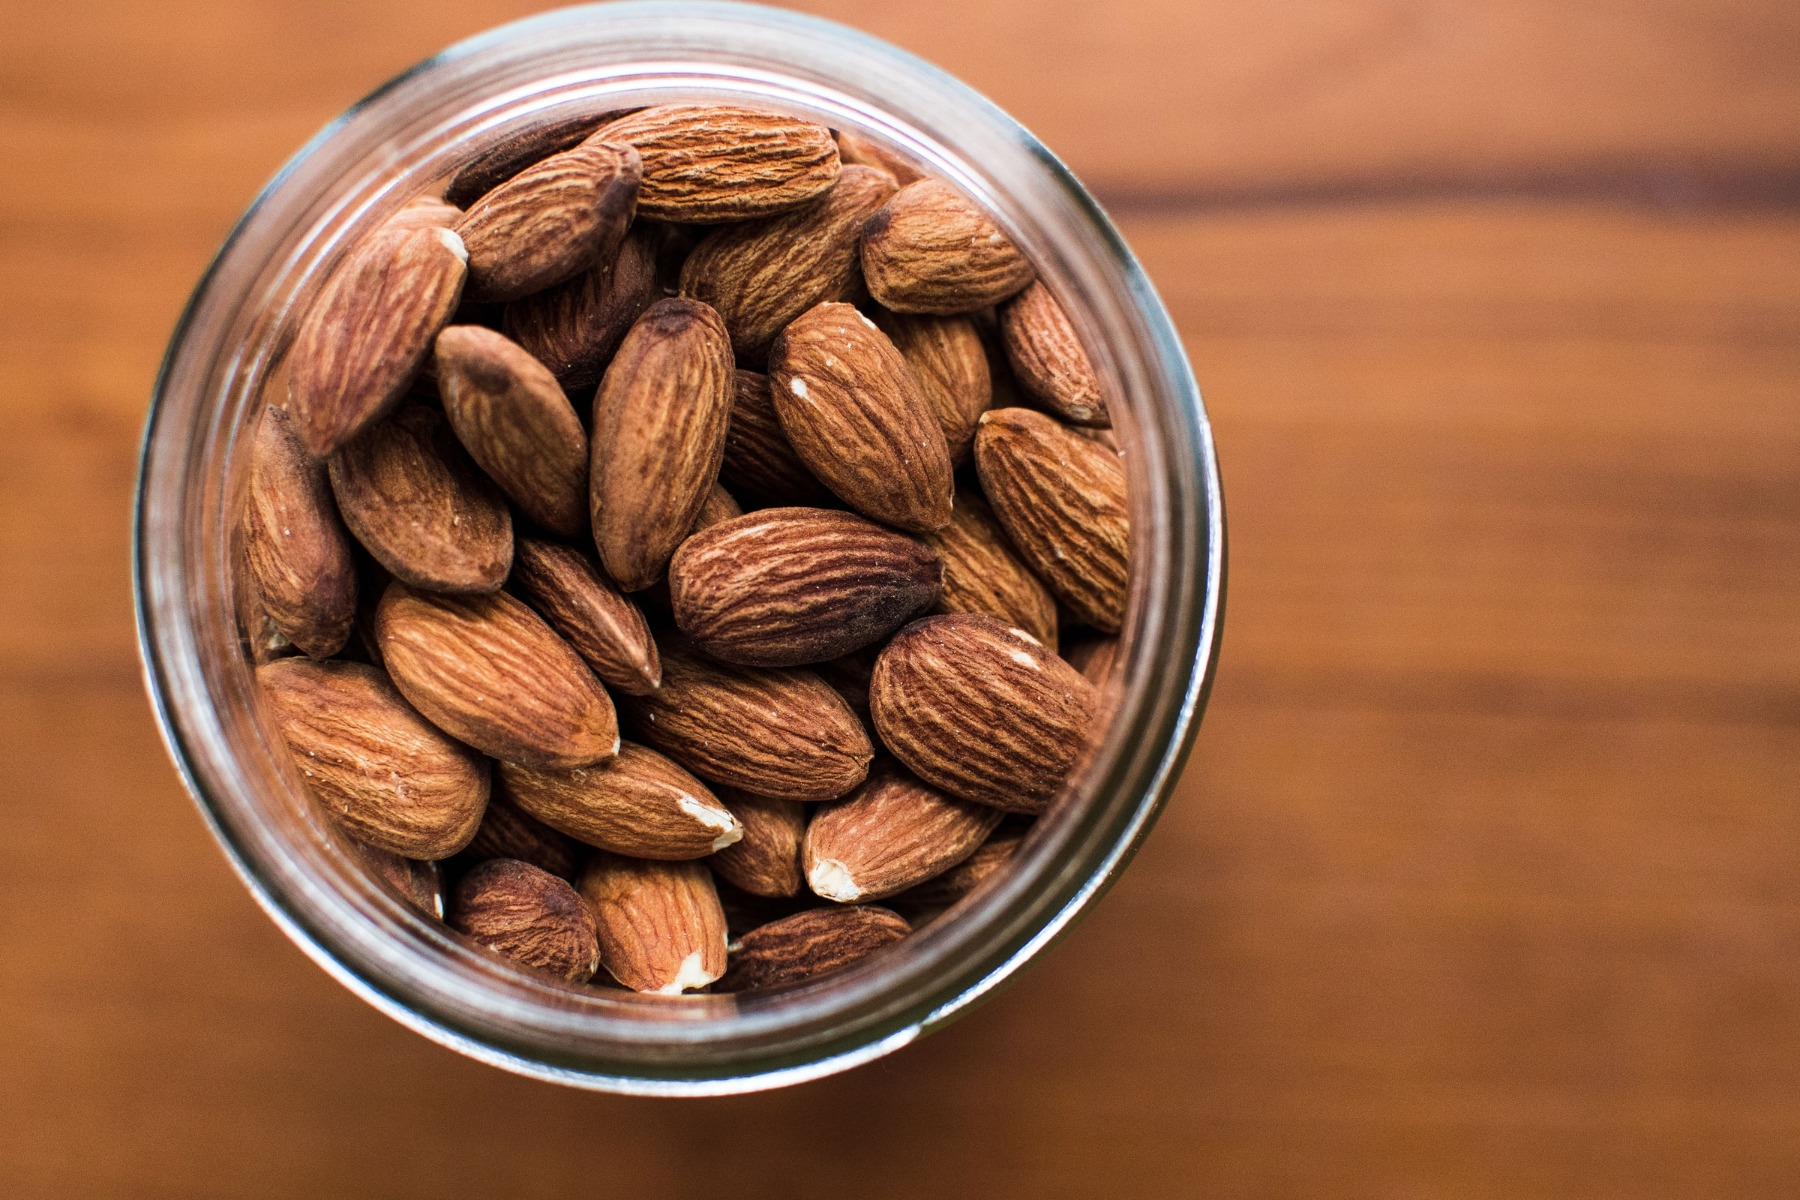 Ten Things You Should Know About Almonds